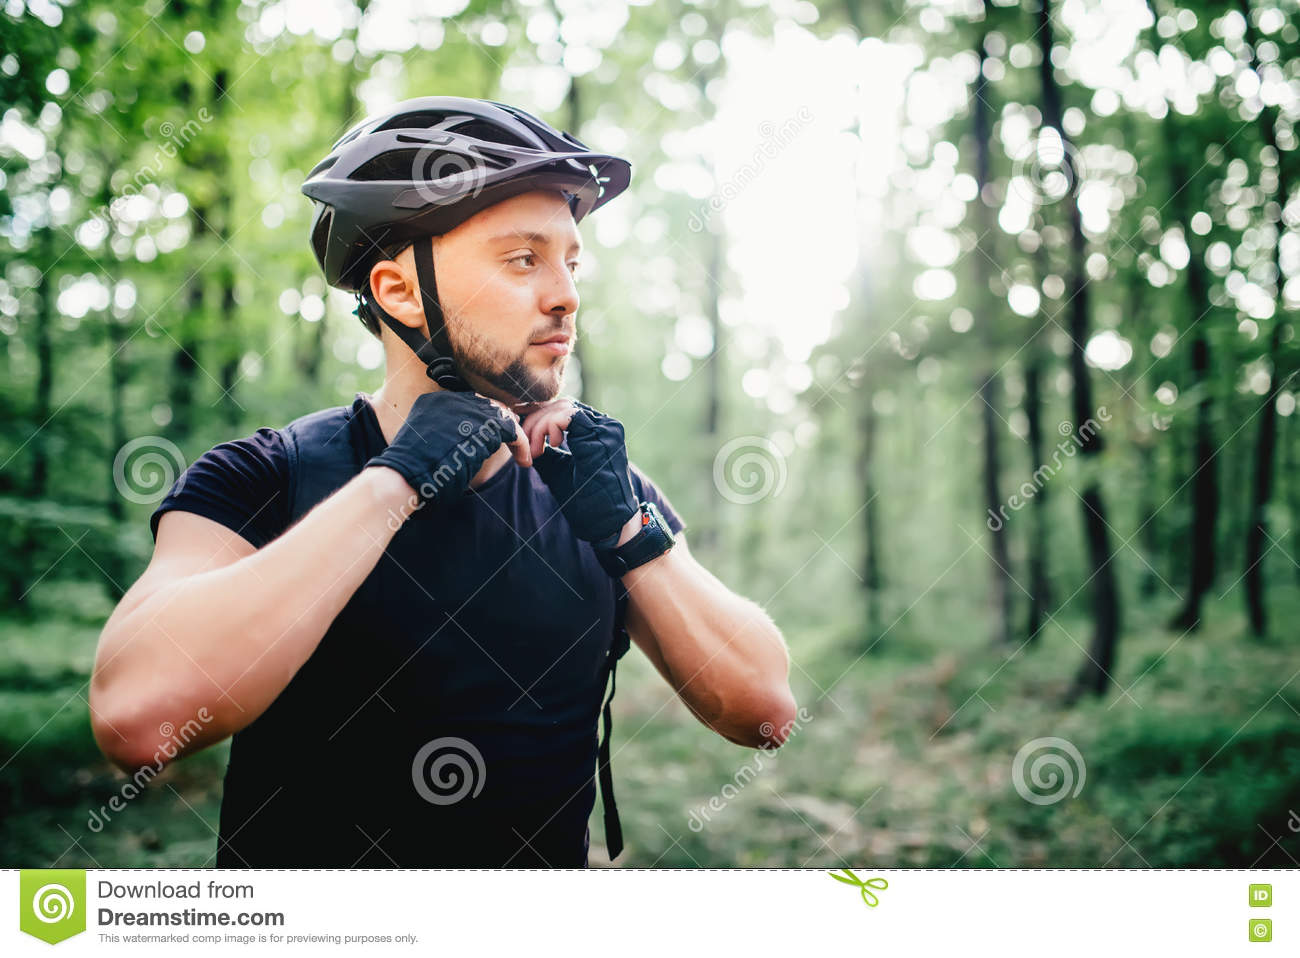 Professional mountain bike rider, cyclist preparing protection helmet during workout